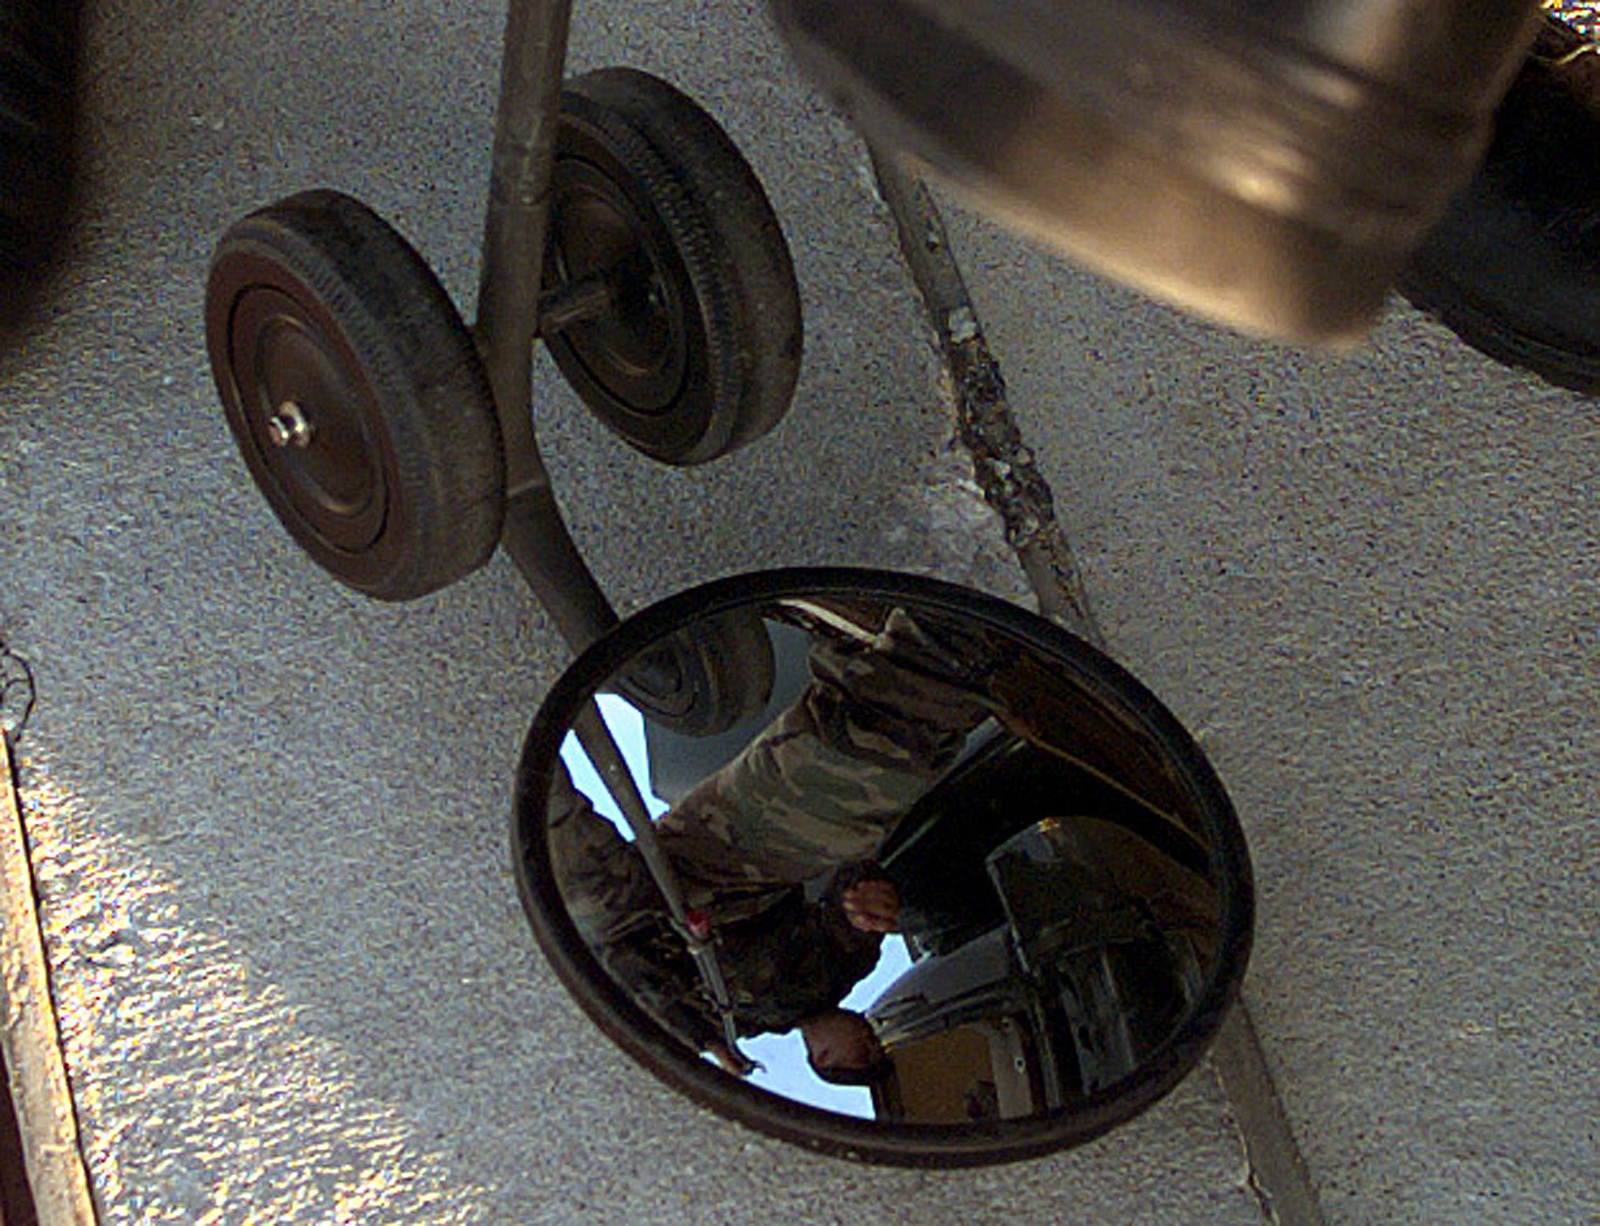 A reflection of a member of the 509th Security Forces can be seen in the under-vehicle mirror used to check the underside of vehicles entering and leaving the priority A area in which B-2 bombers are parked during the joint military exercise GLOBAL GUARDIAN '98